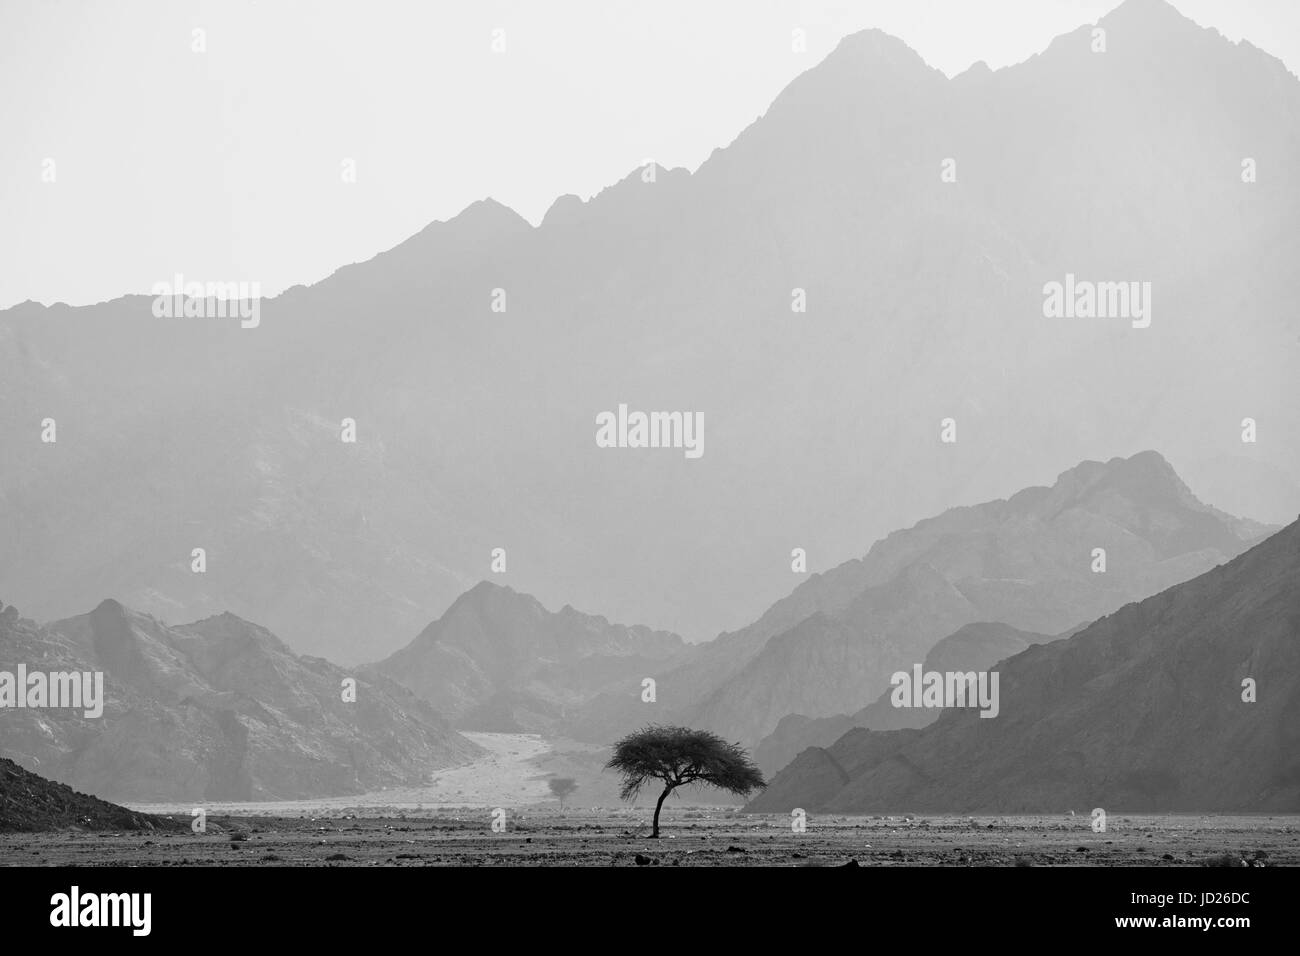 Tree in desert. South Sinai. Egypt - Stock Image